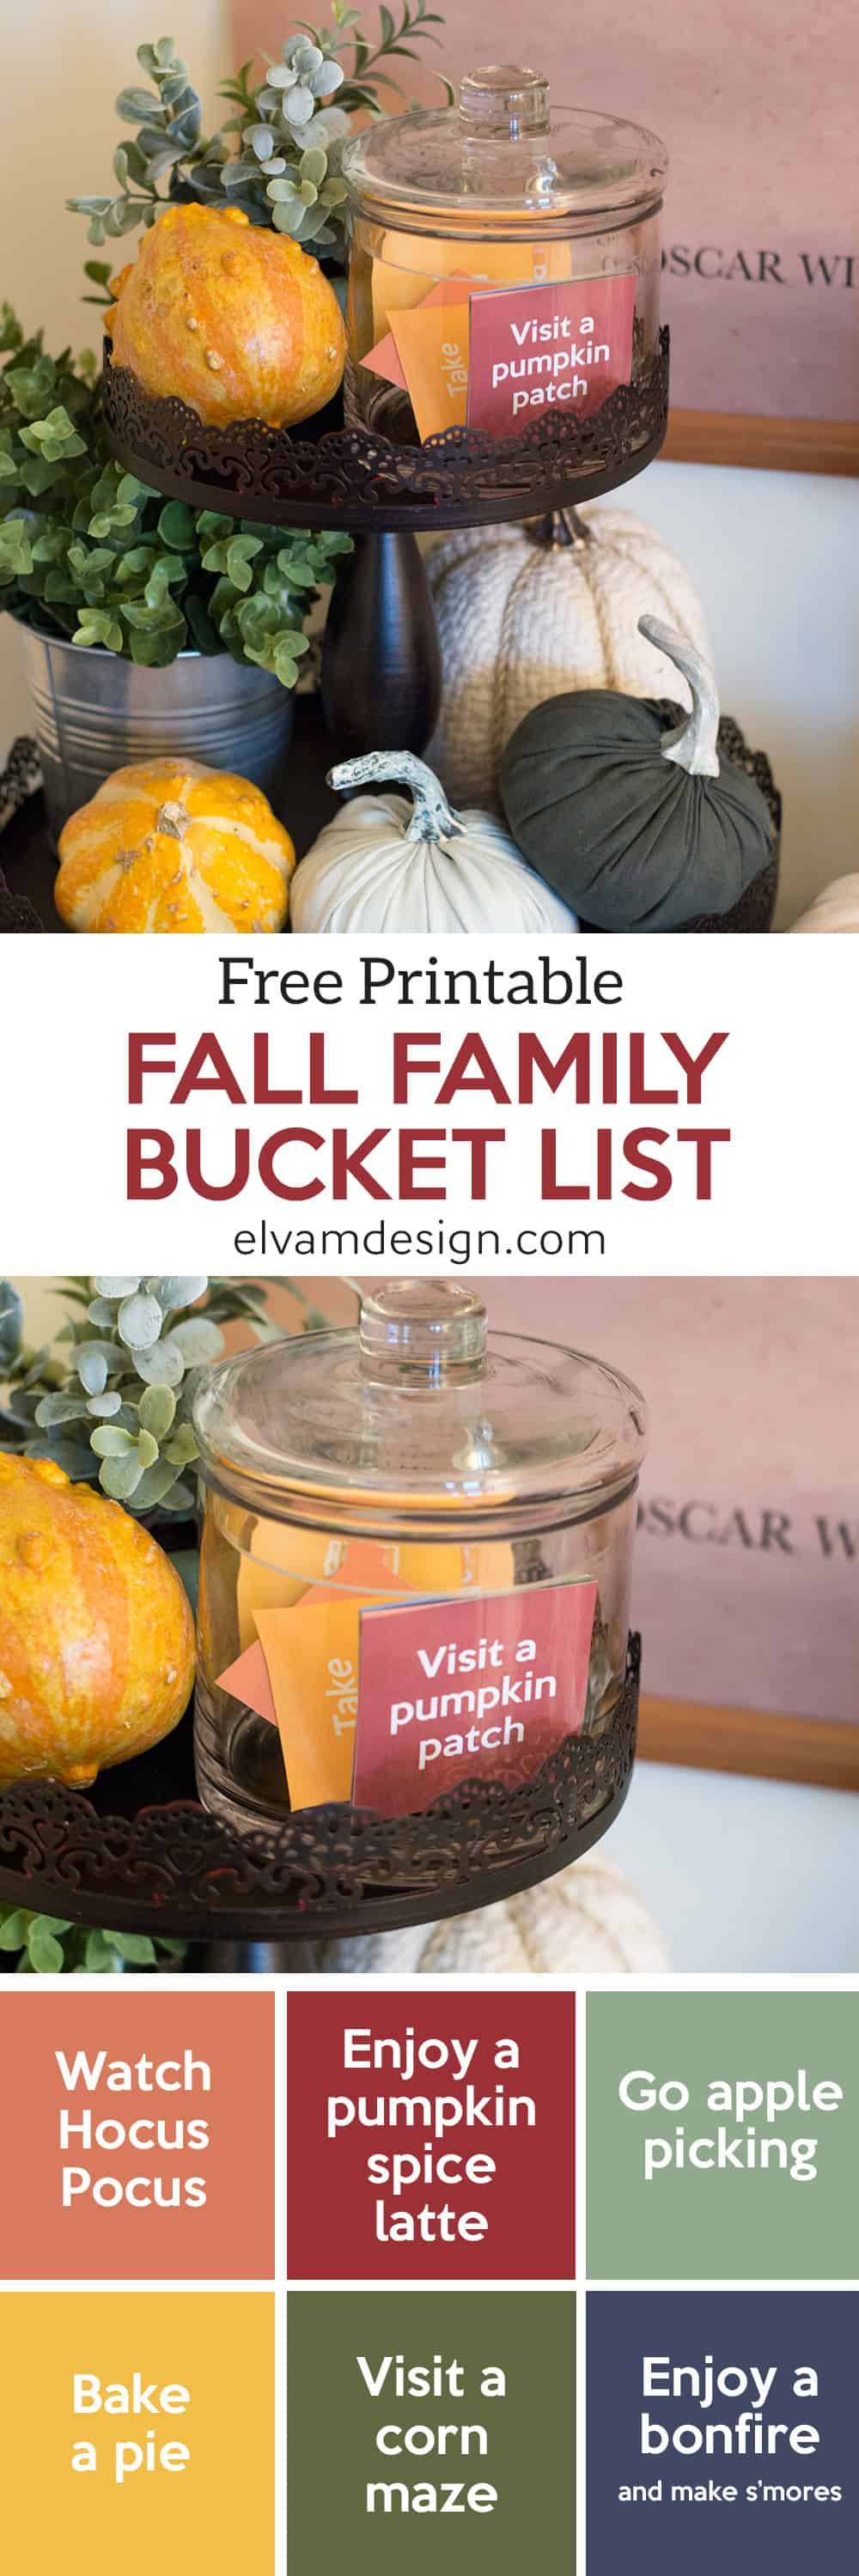 Free Fall Family Bucket List Printable from Elva M Design includes fun Fall activities to do as a family.